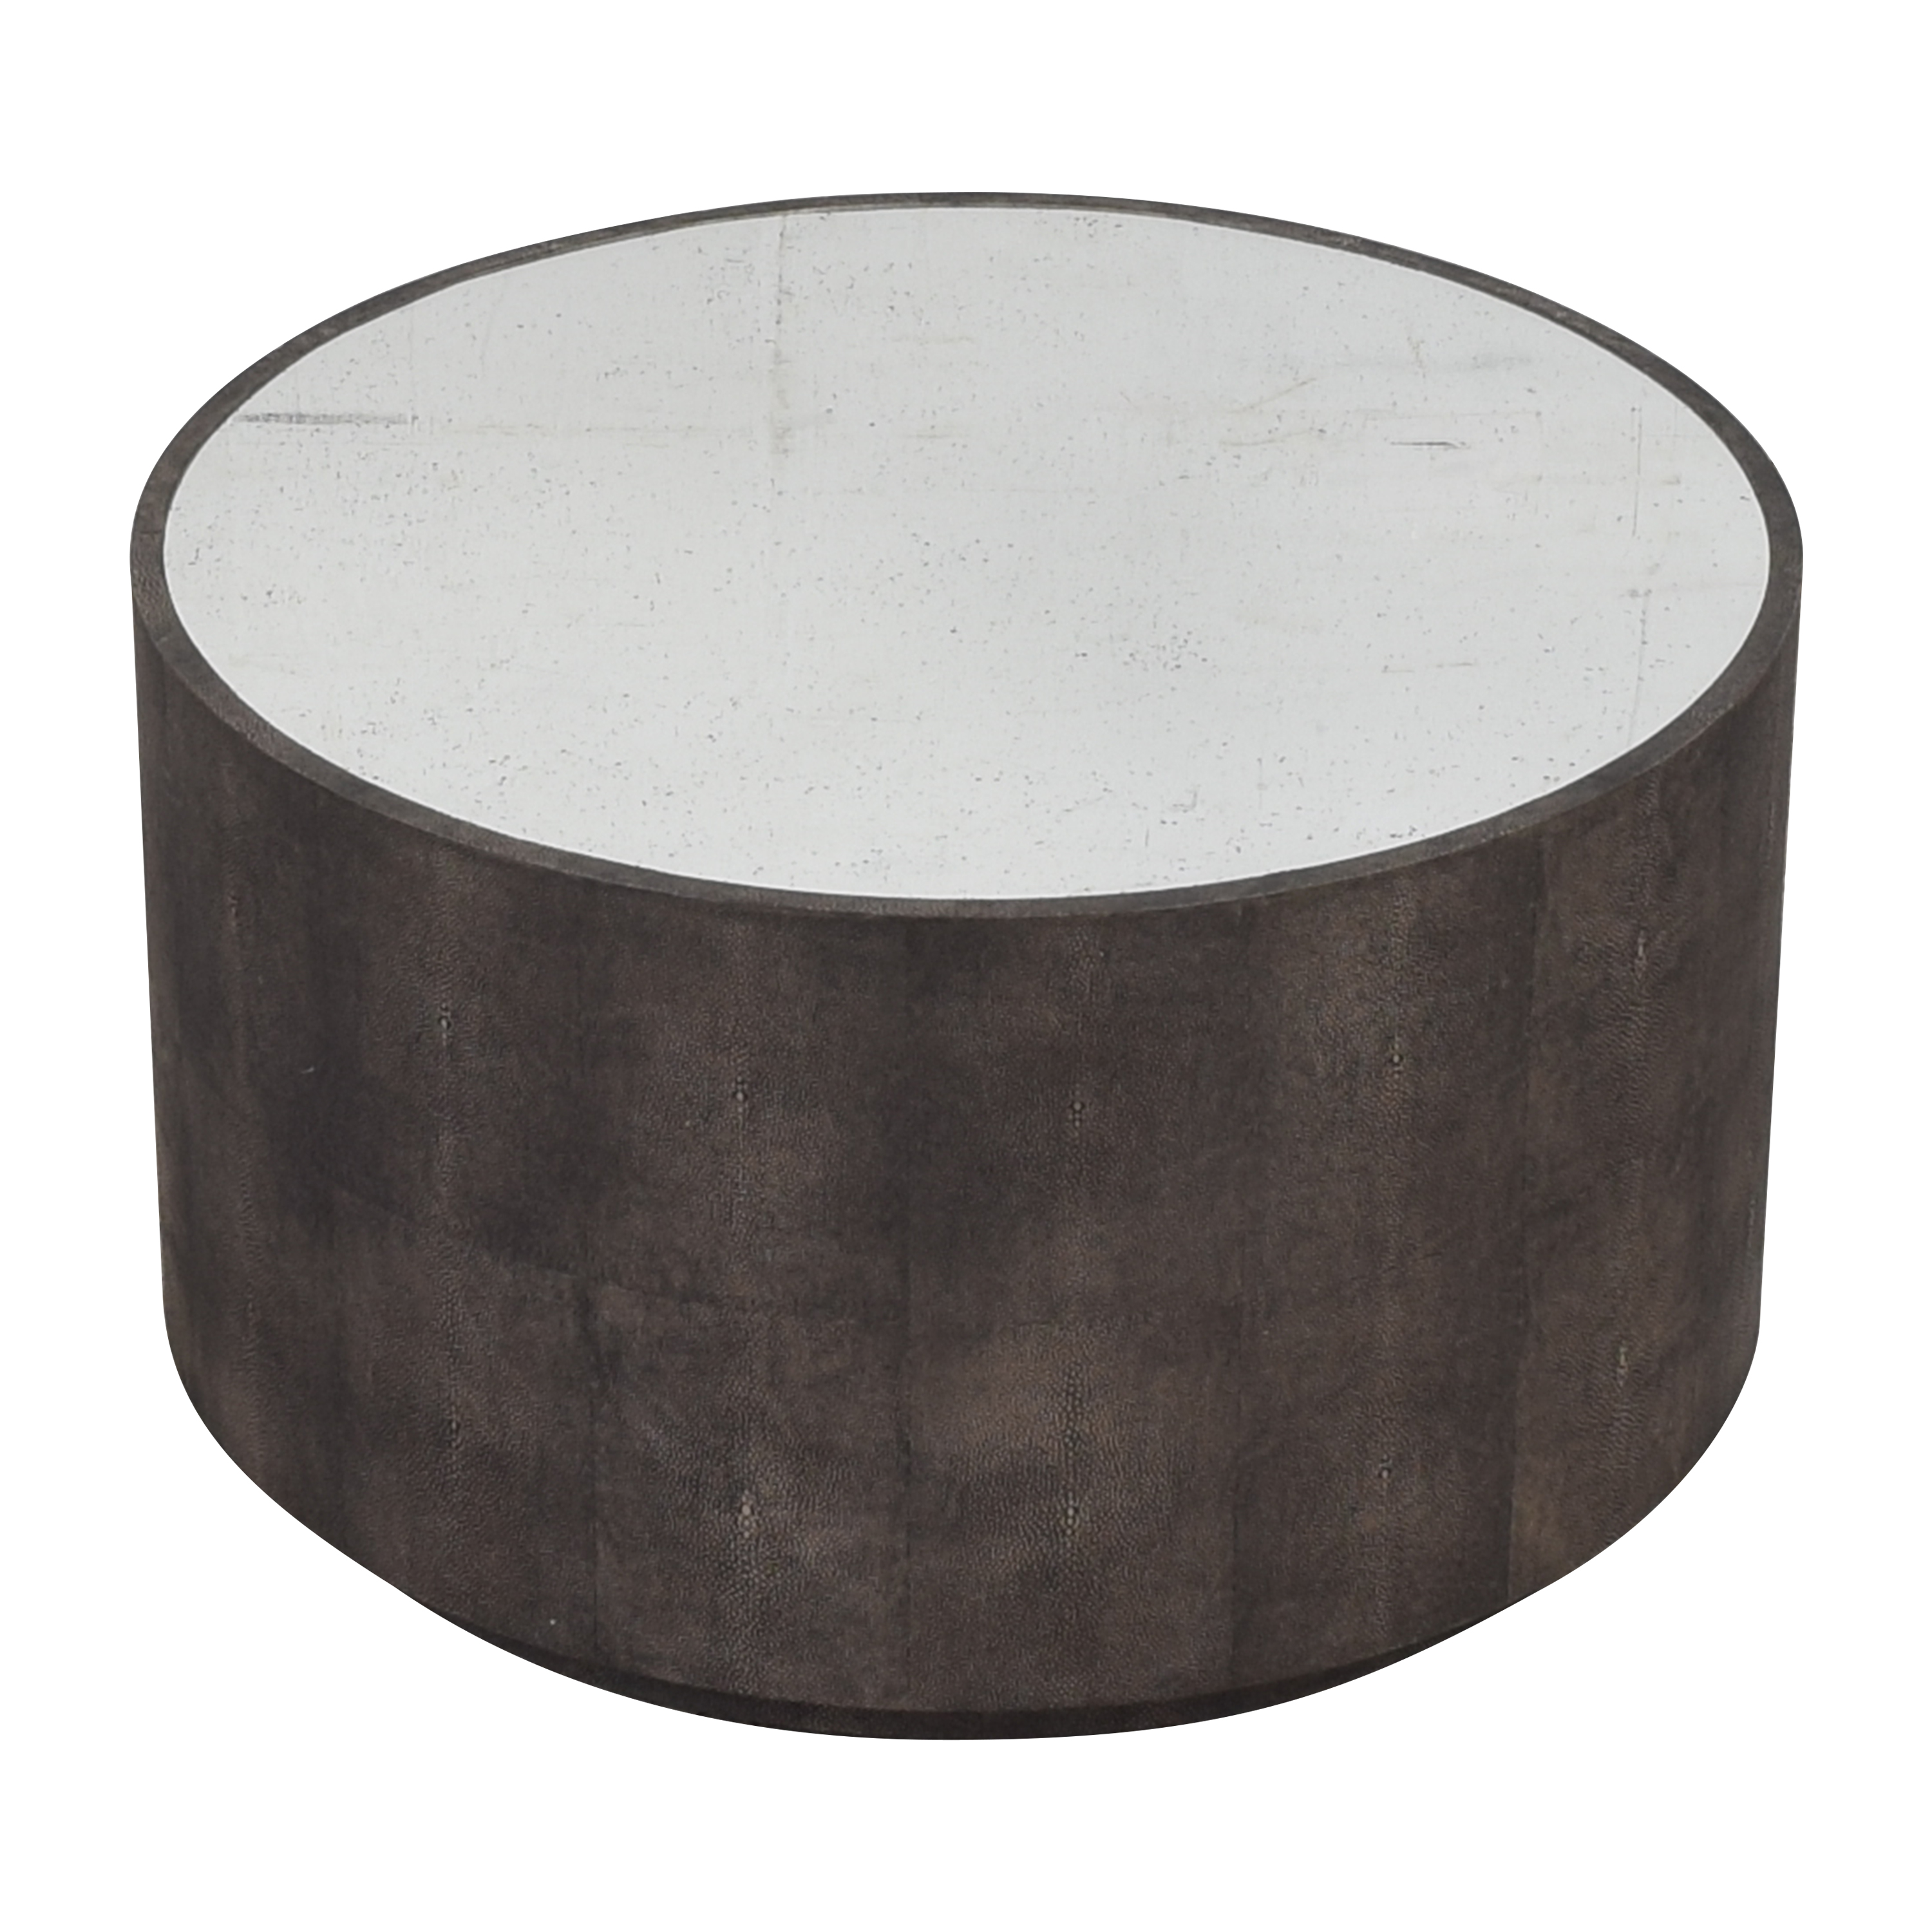 Mecox Gardens Mecox Gardens Round Coffee Table coupon